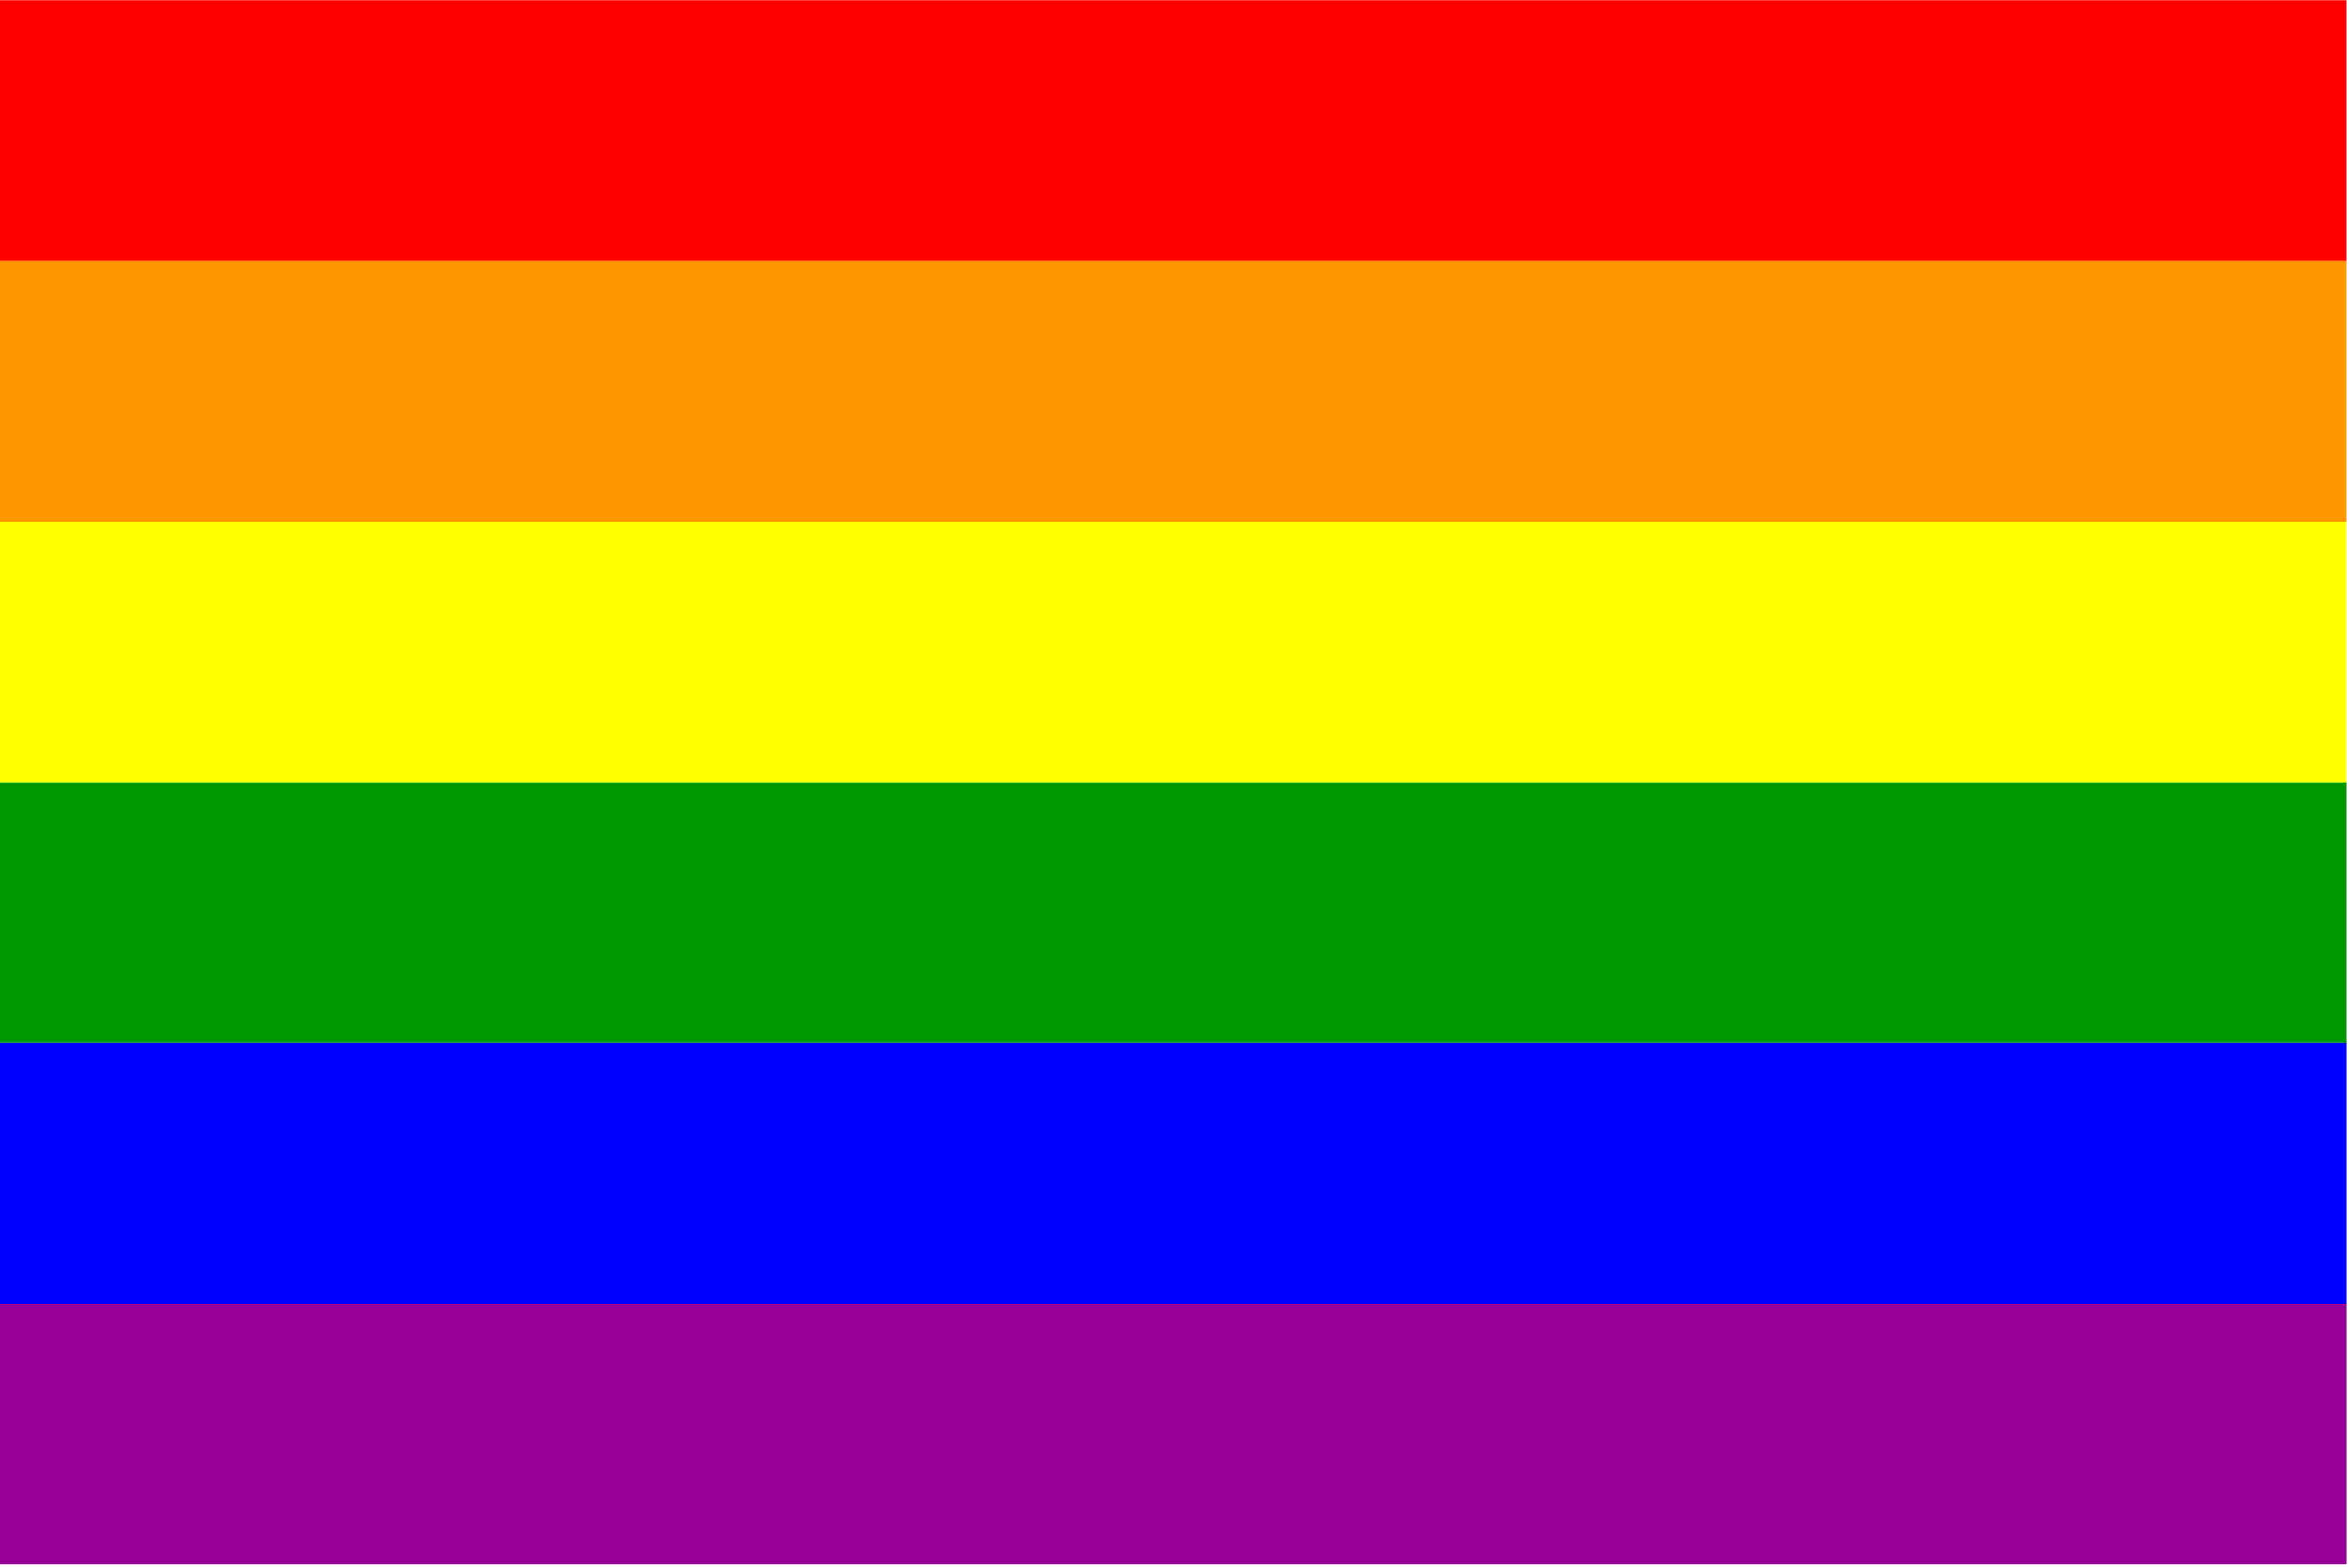 The Gay Colors